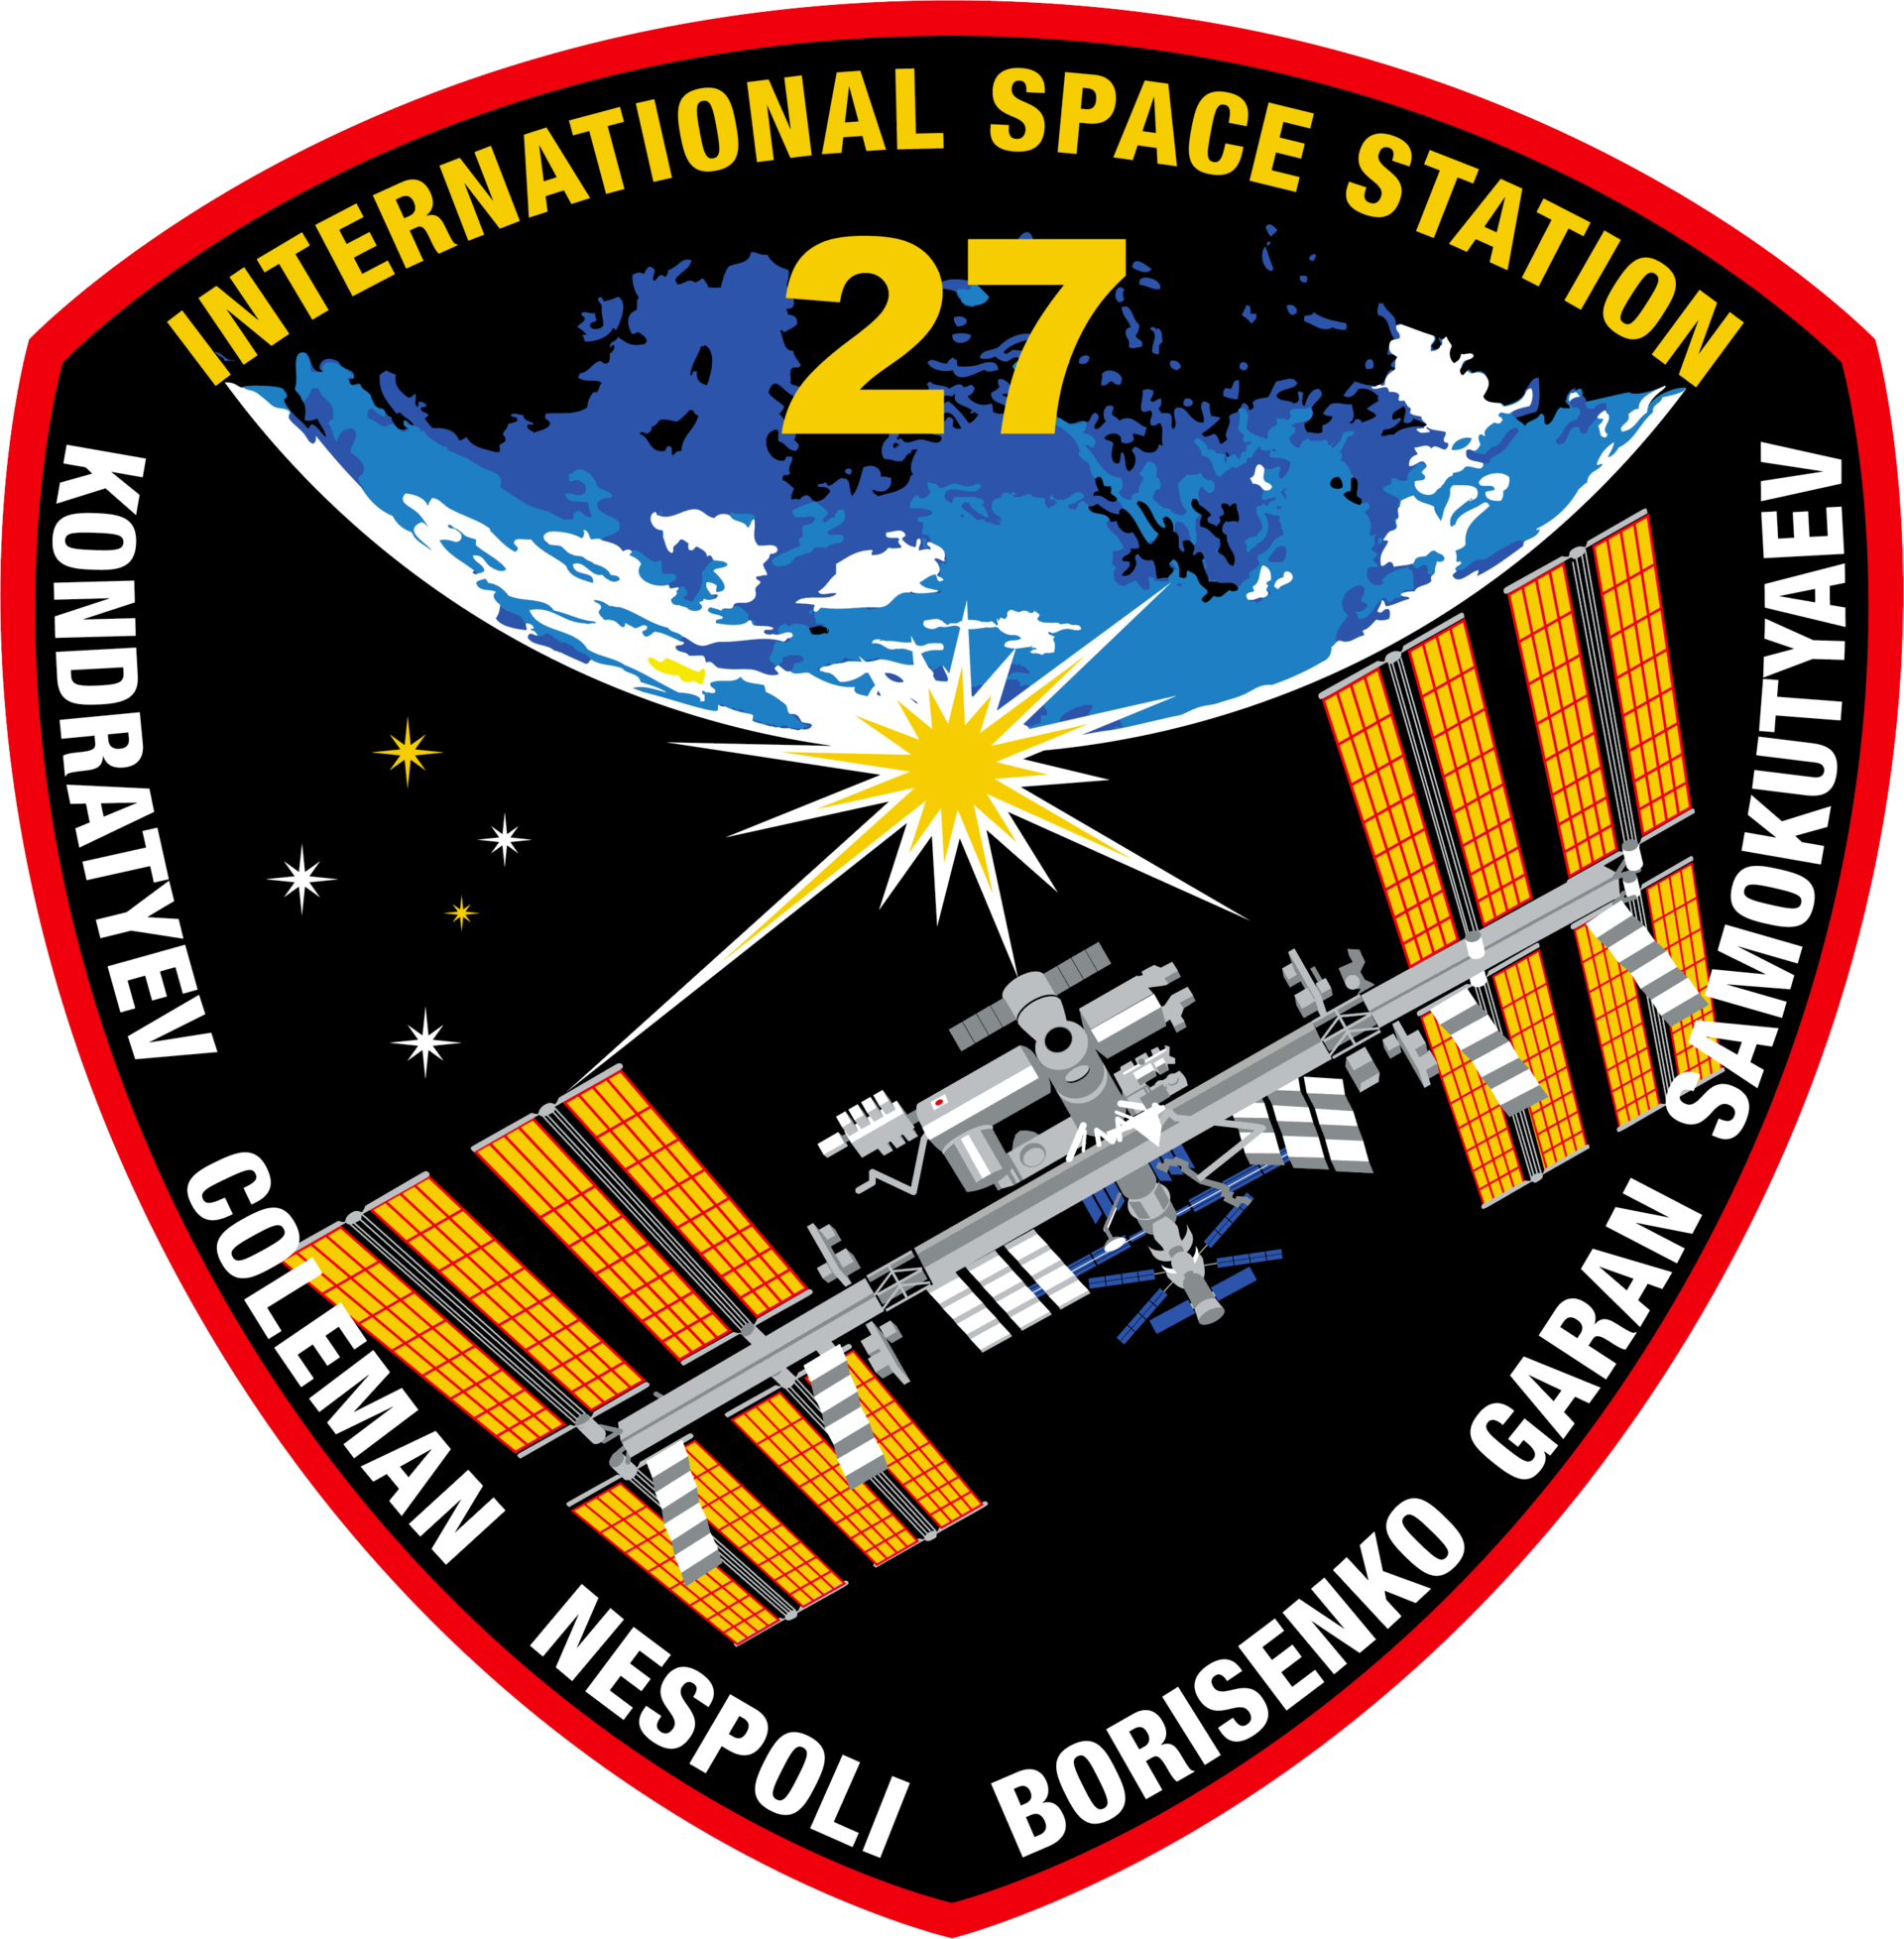 Mission Patches On Mission 4 To The International Space: ISS-Expedition 27